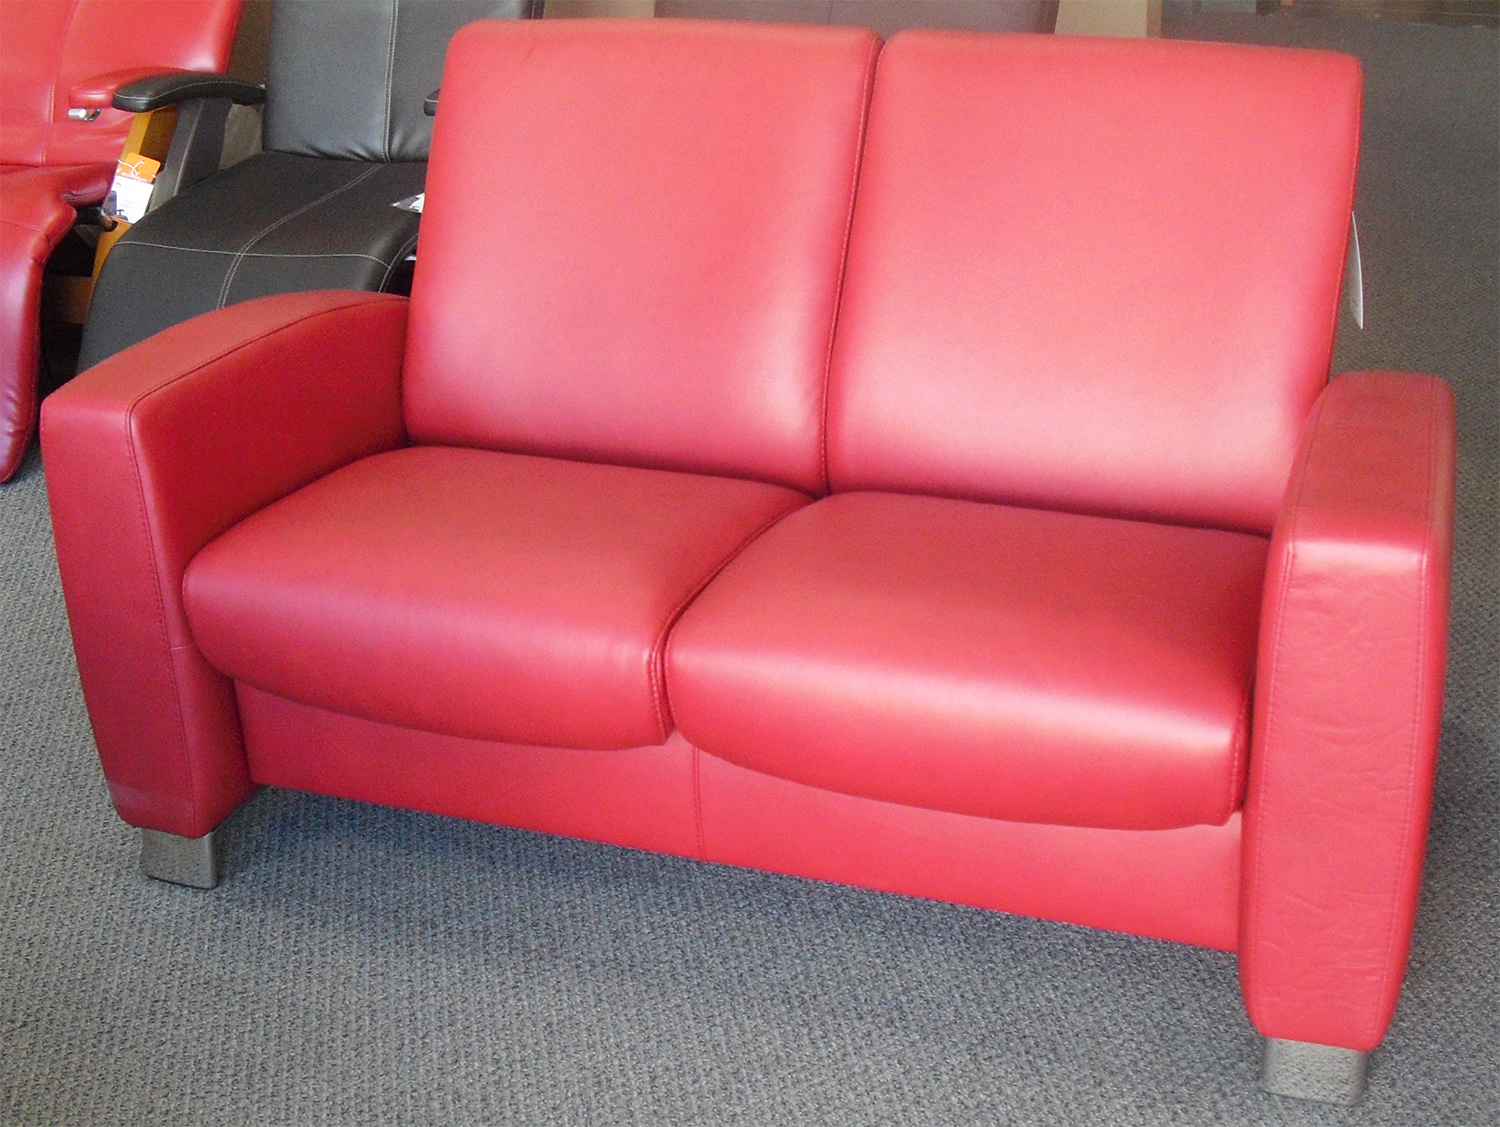 Full Size of Stressless Furniture Usa Couch Used Sofa Australia Review Buckingham Cost Second Hand For Sale Red Leather Couches Ebay List Uk Arion Loveseat Low Back In Sofa Stressless Sofa